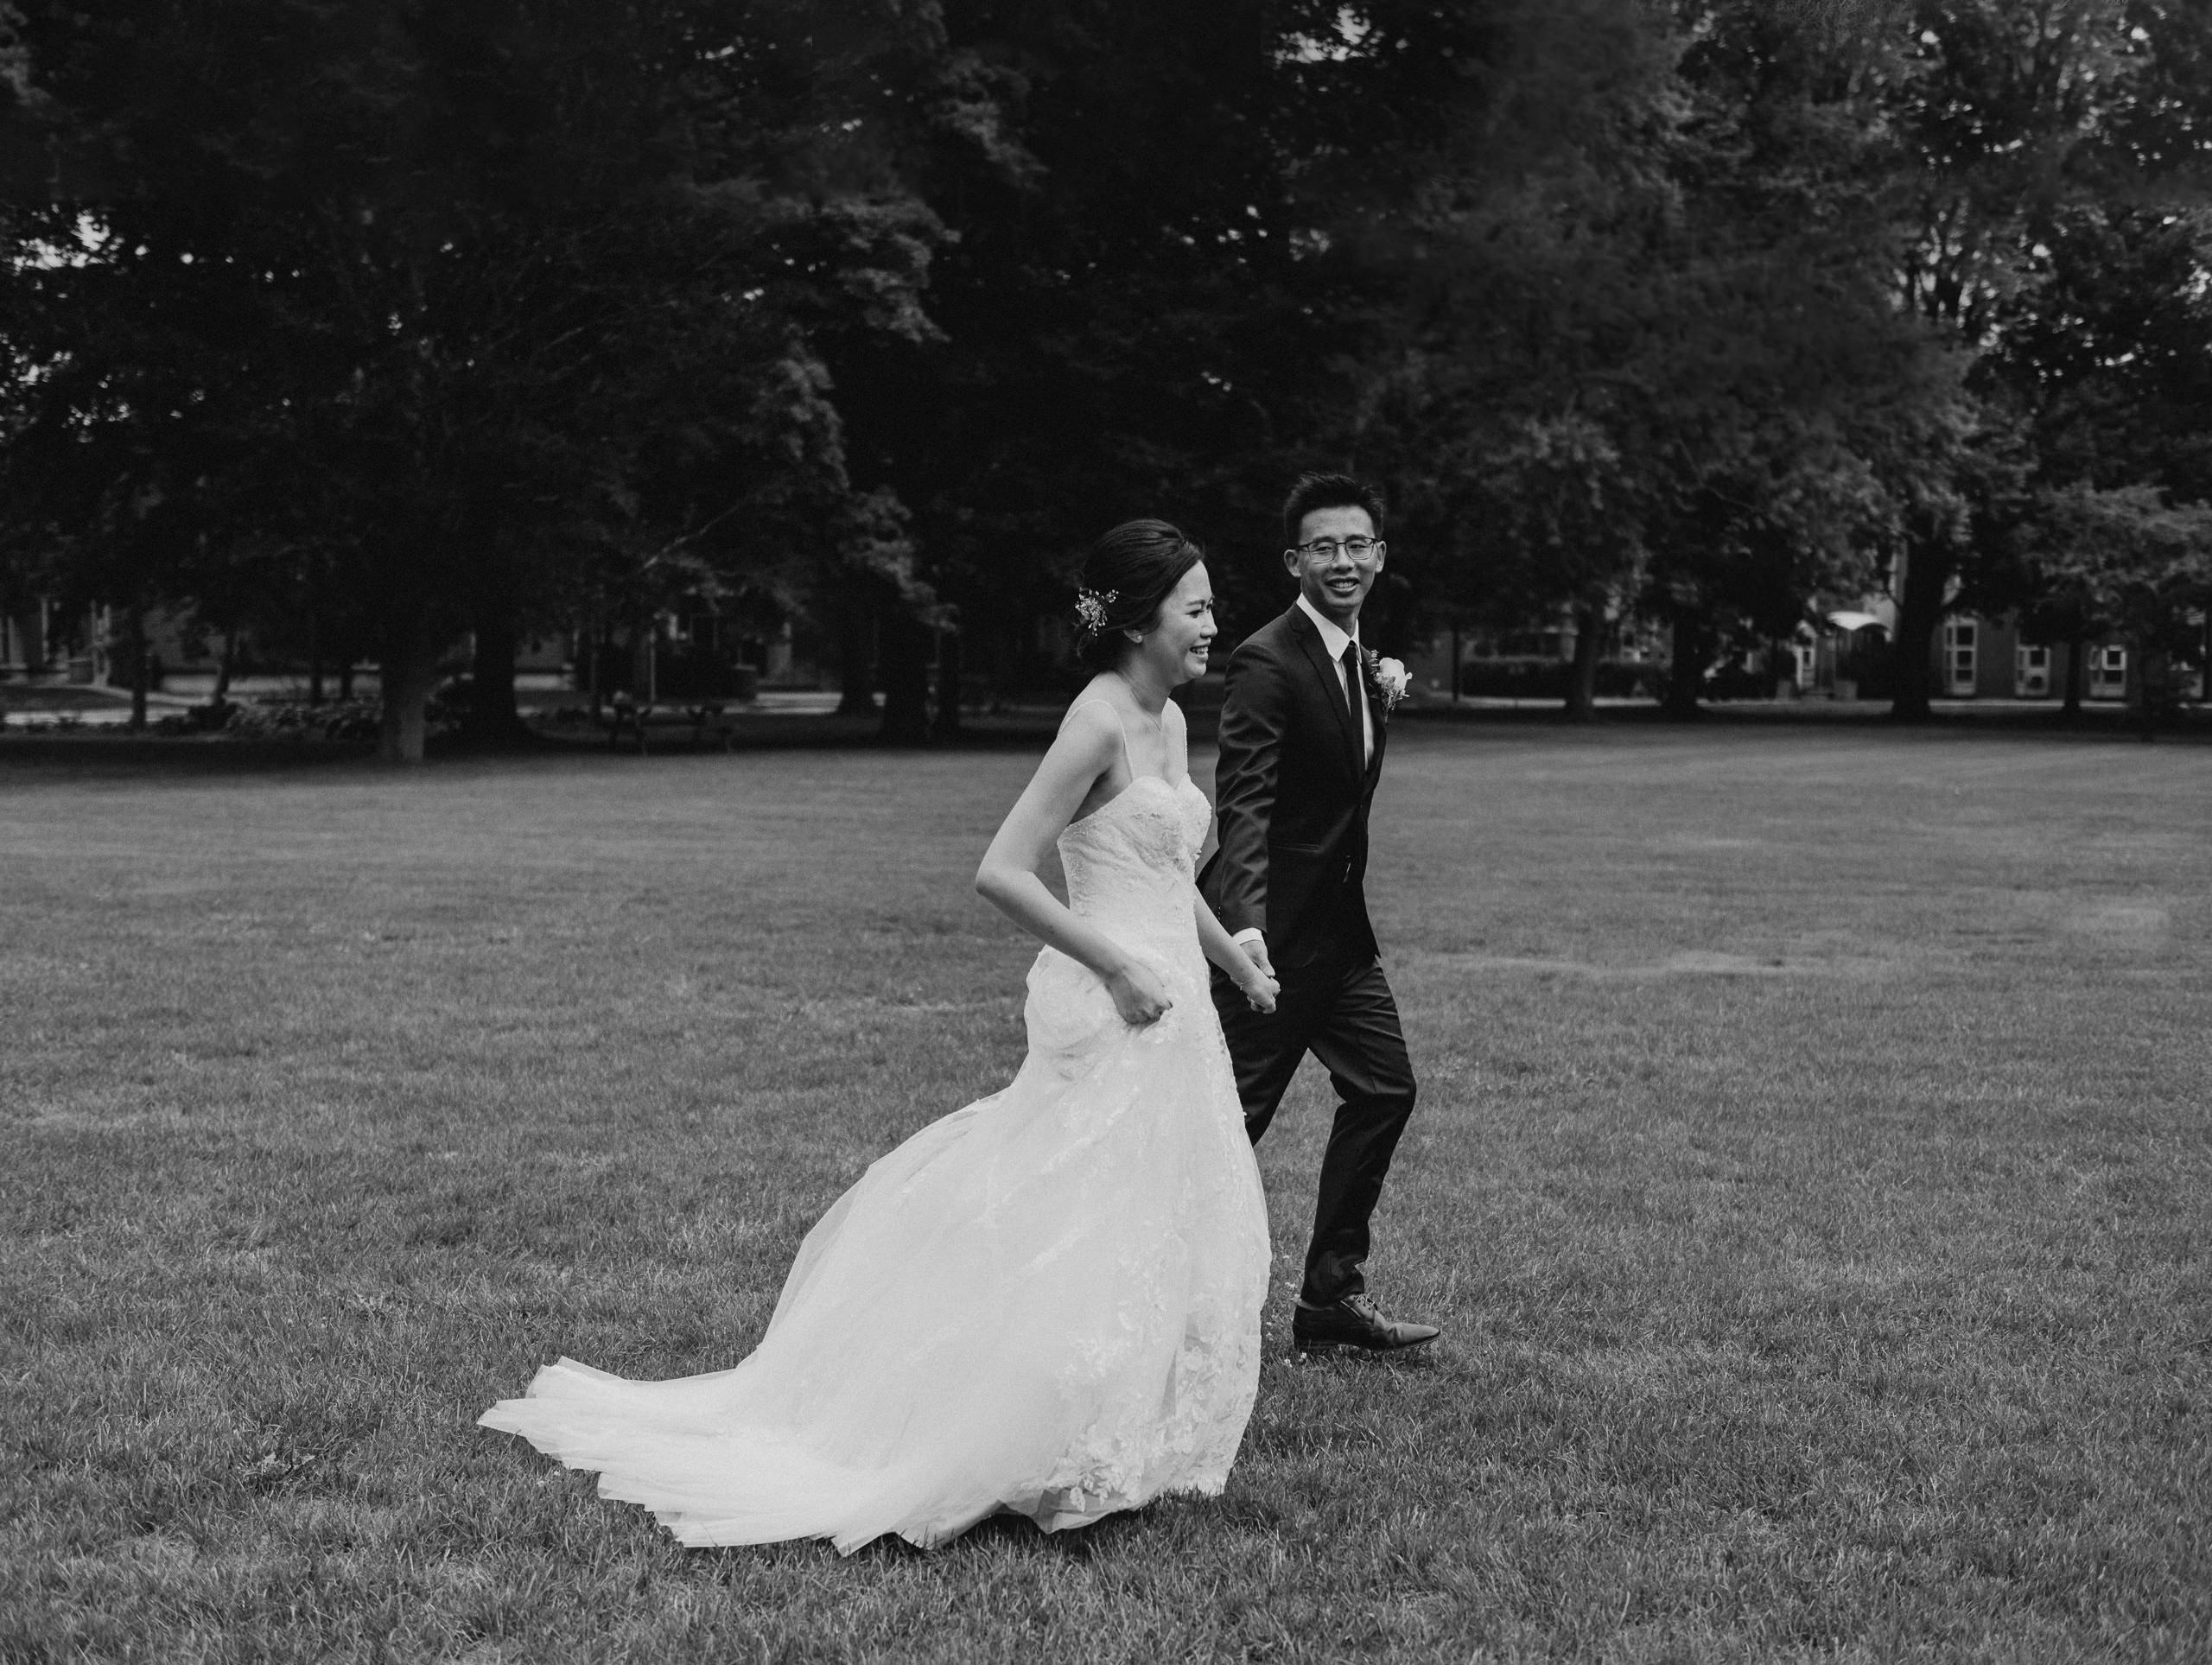 Black and White wedding photo of Bride and Groom at York University Glendon Campus, Documentary style Toronto Wedding Photographer